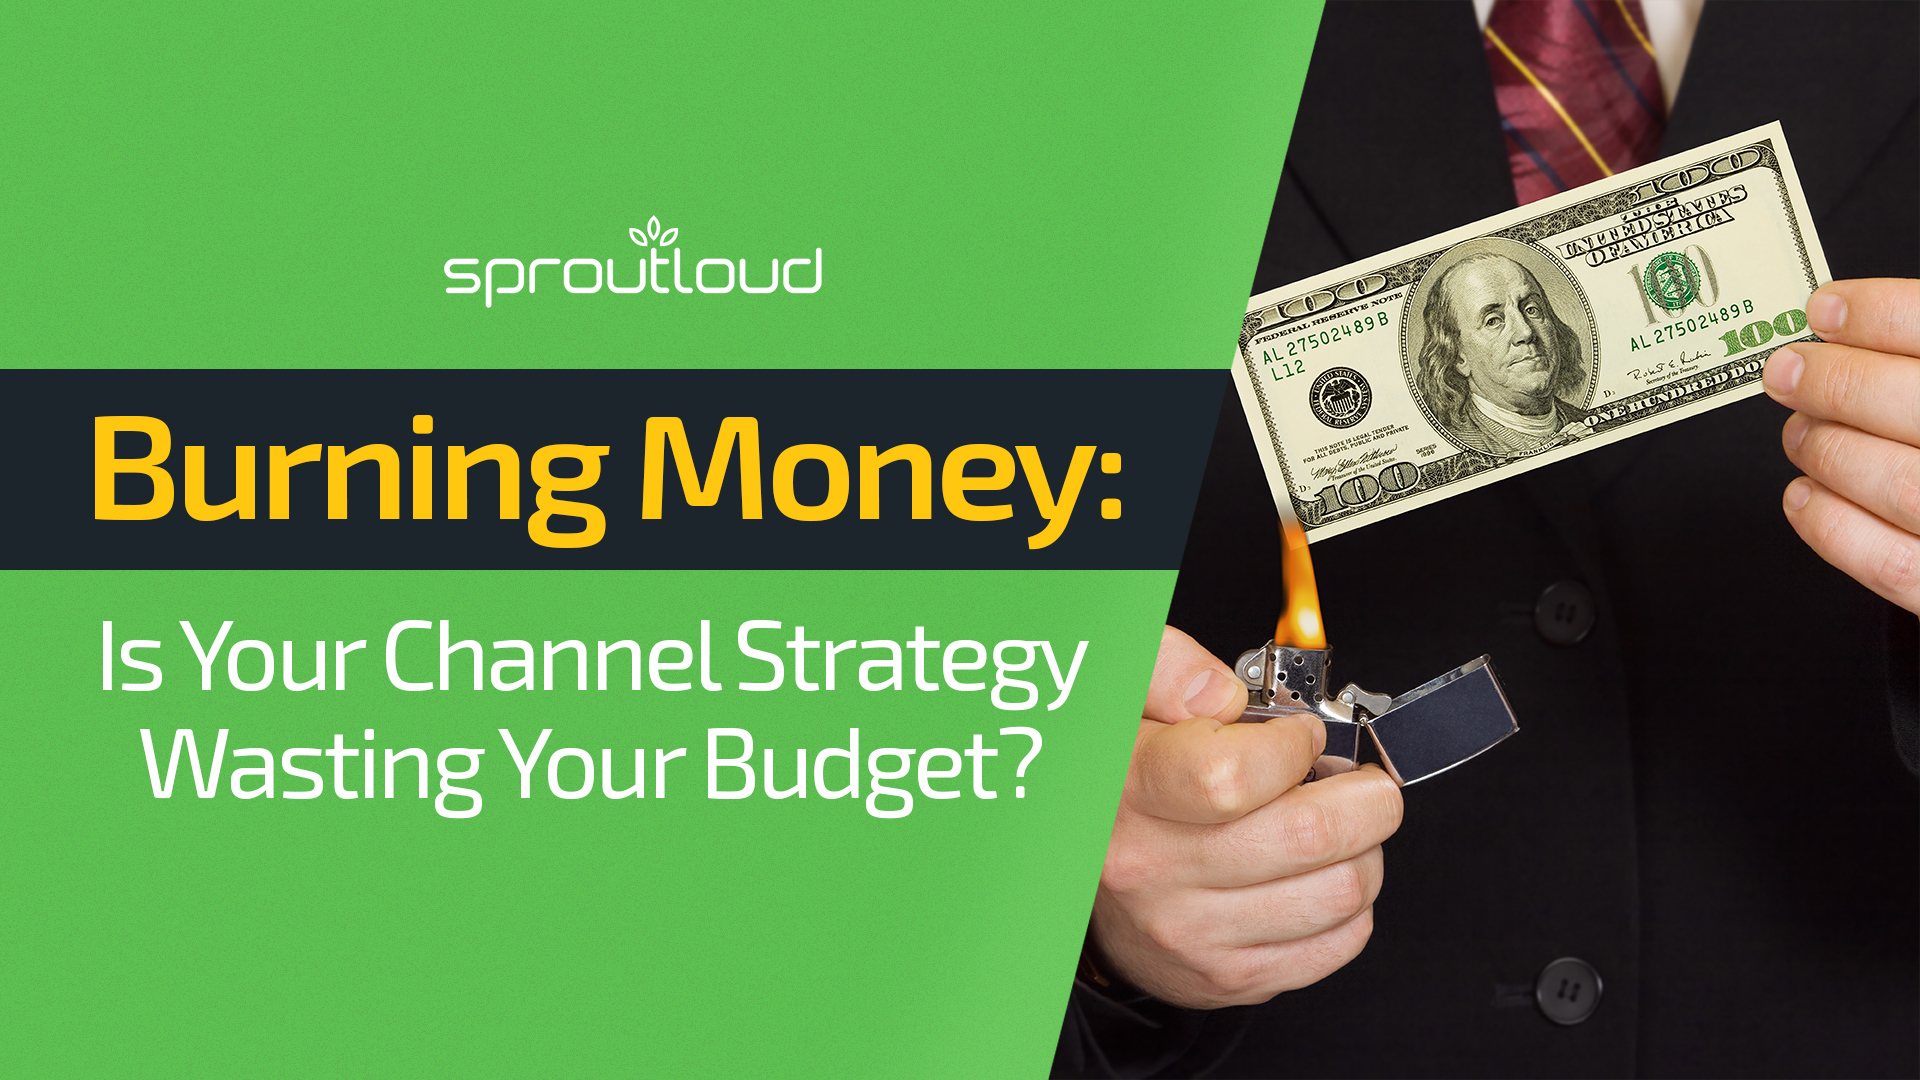 Burning Money-Is Your Channel Strategy Wasting Your Budget